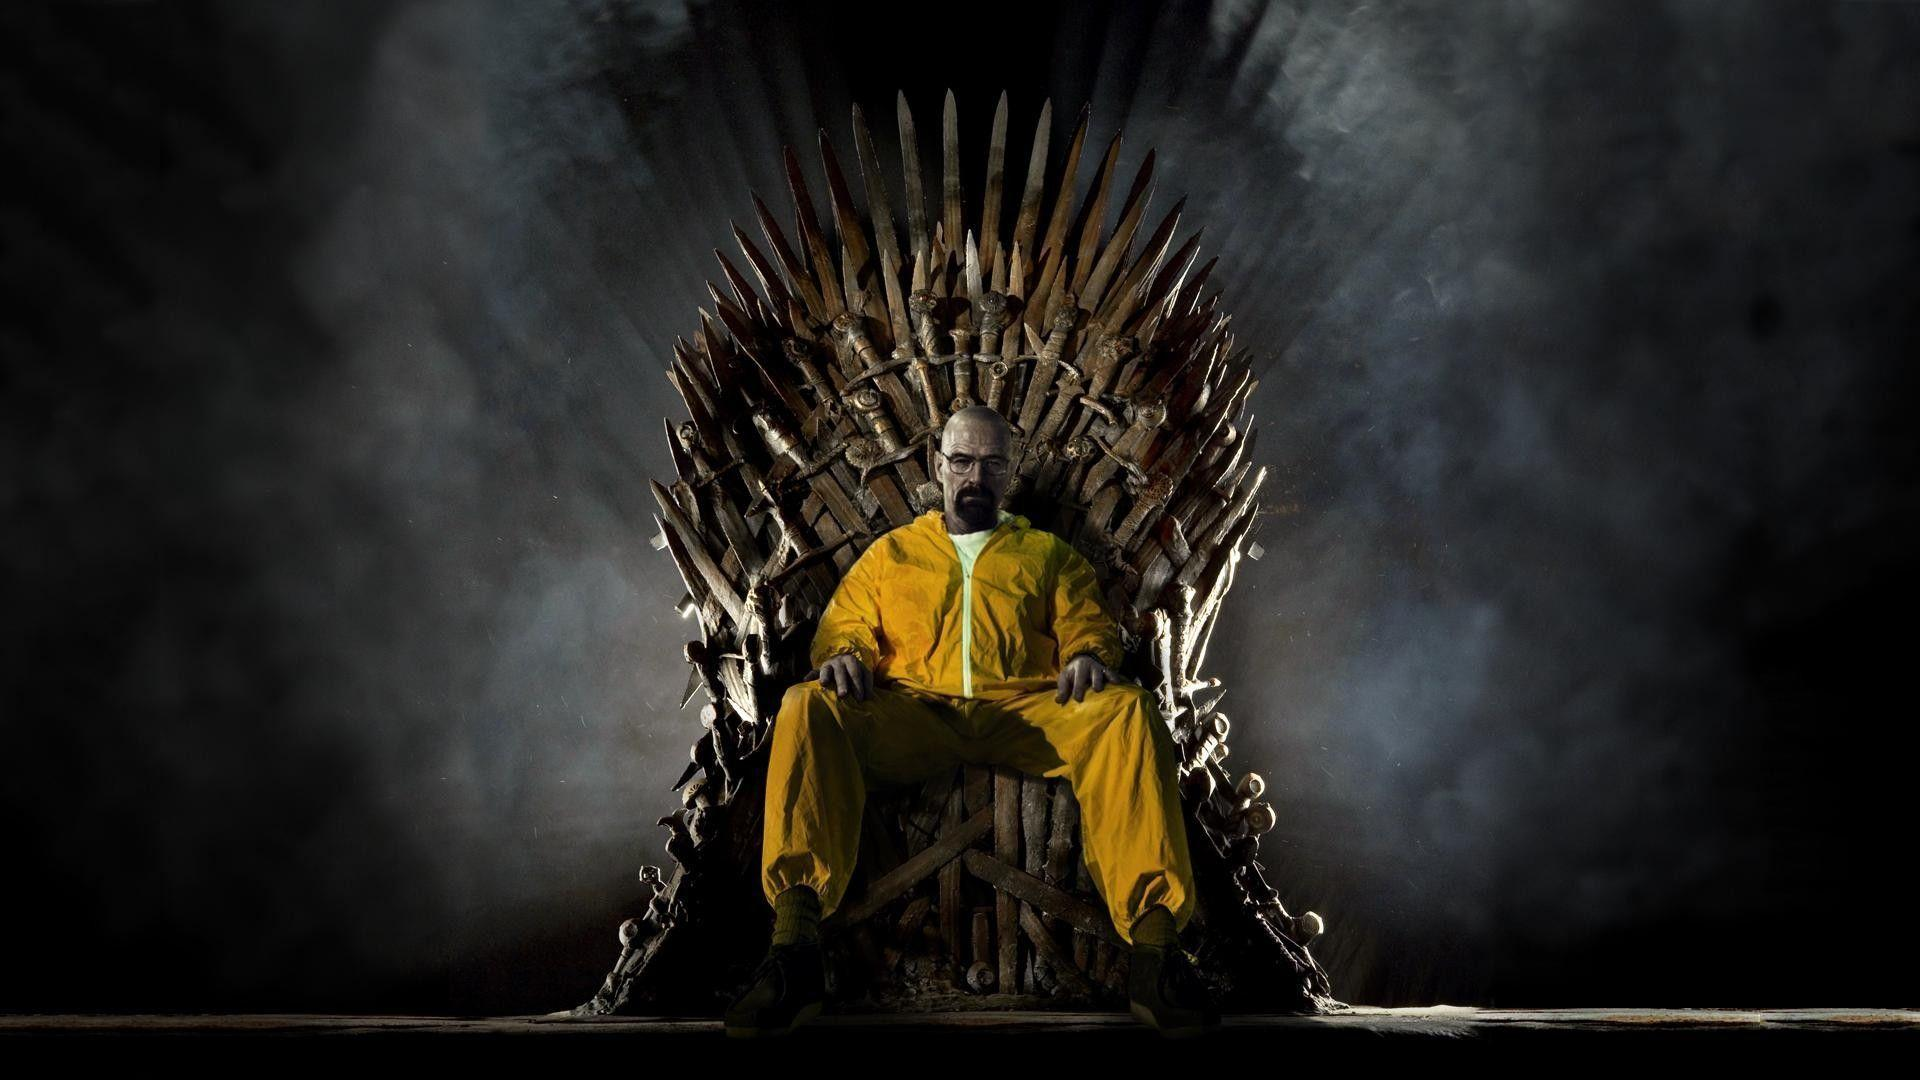 Walter White on the Iron Throne [Breaking Bad Wallpaper]